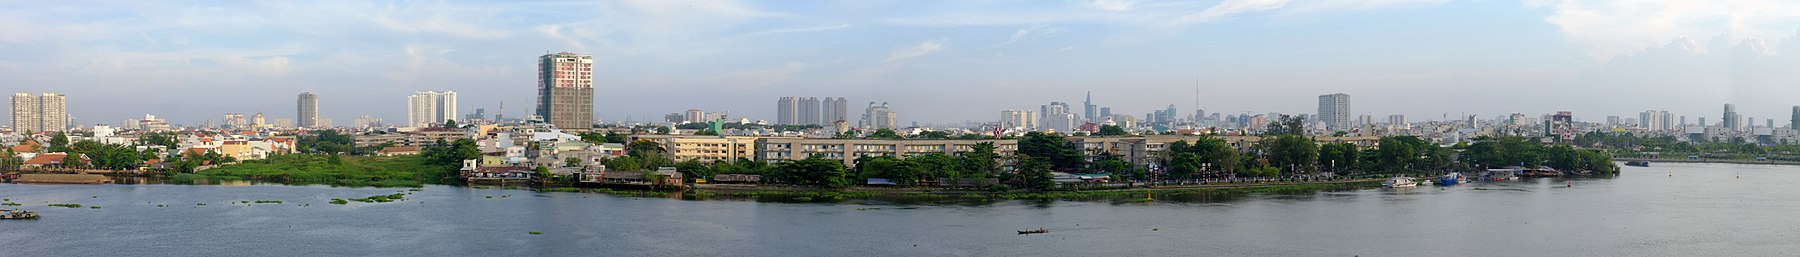 Panorama of the Vietnamese city with high urbanisation rate